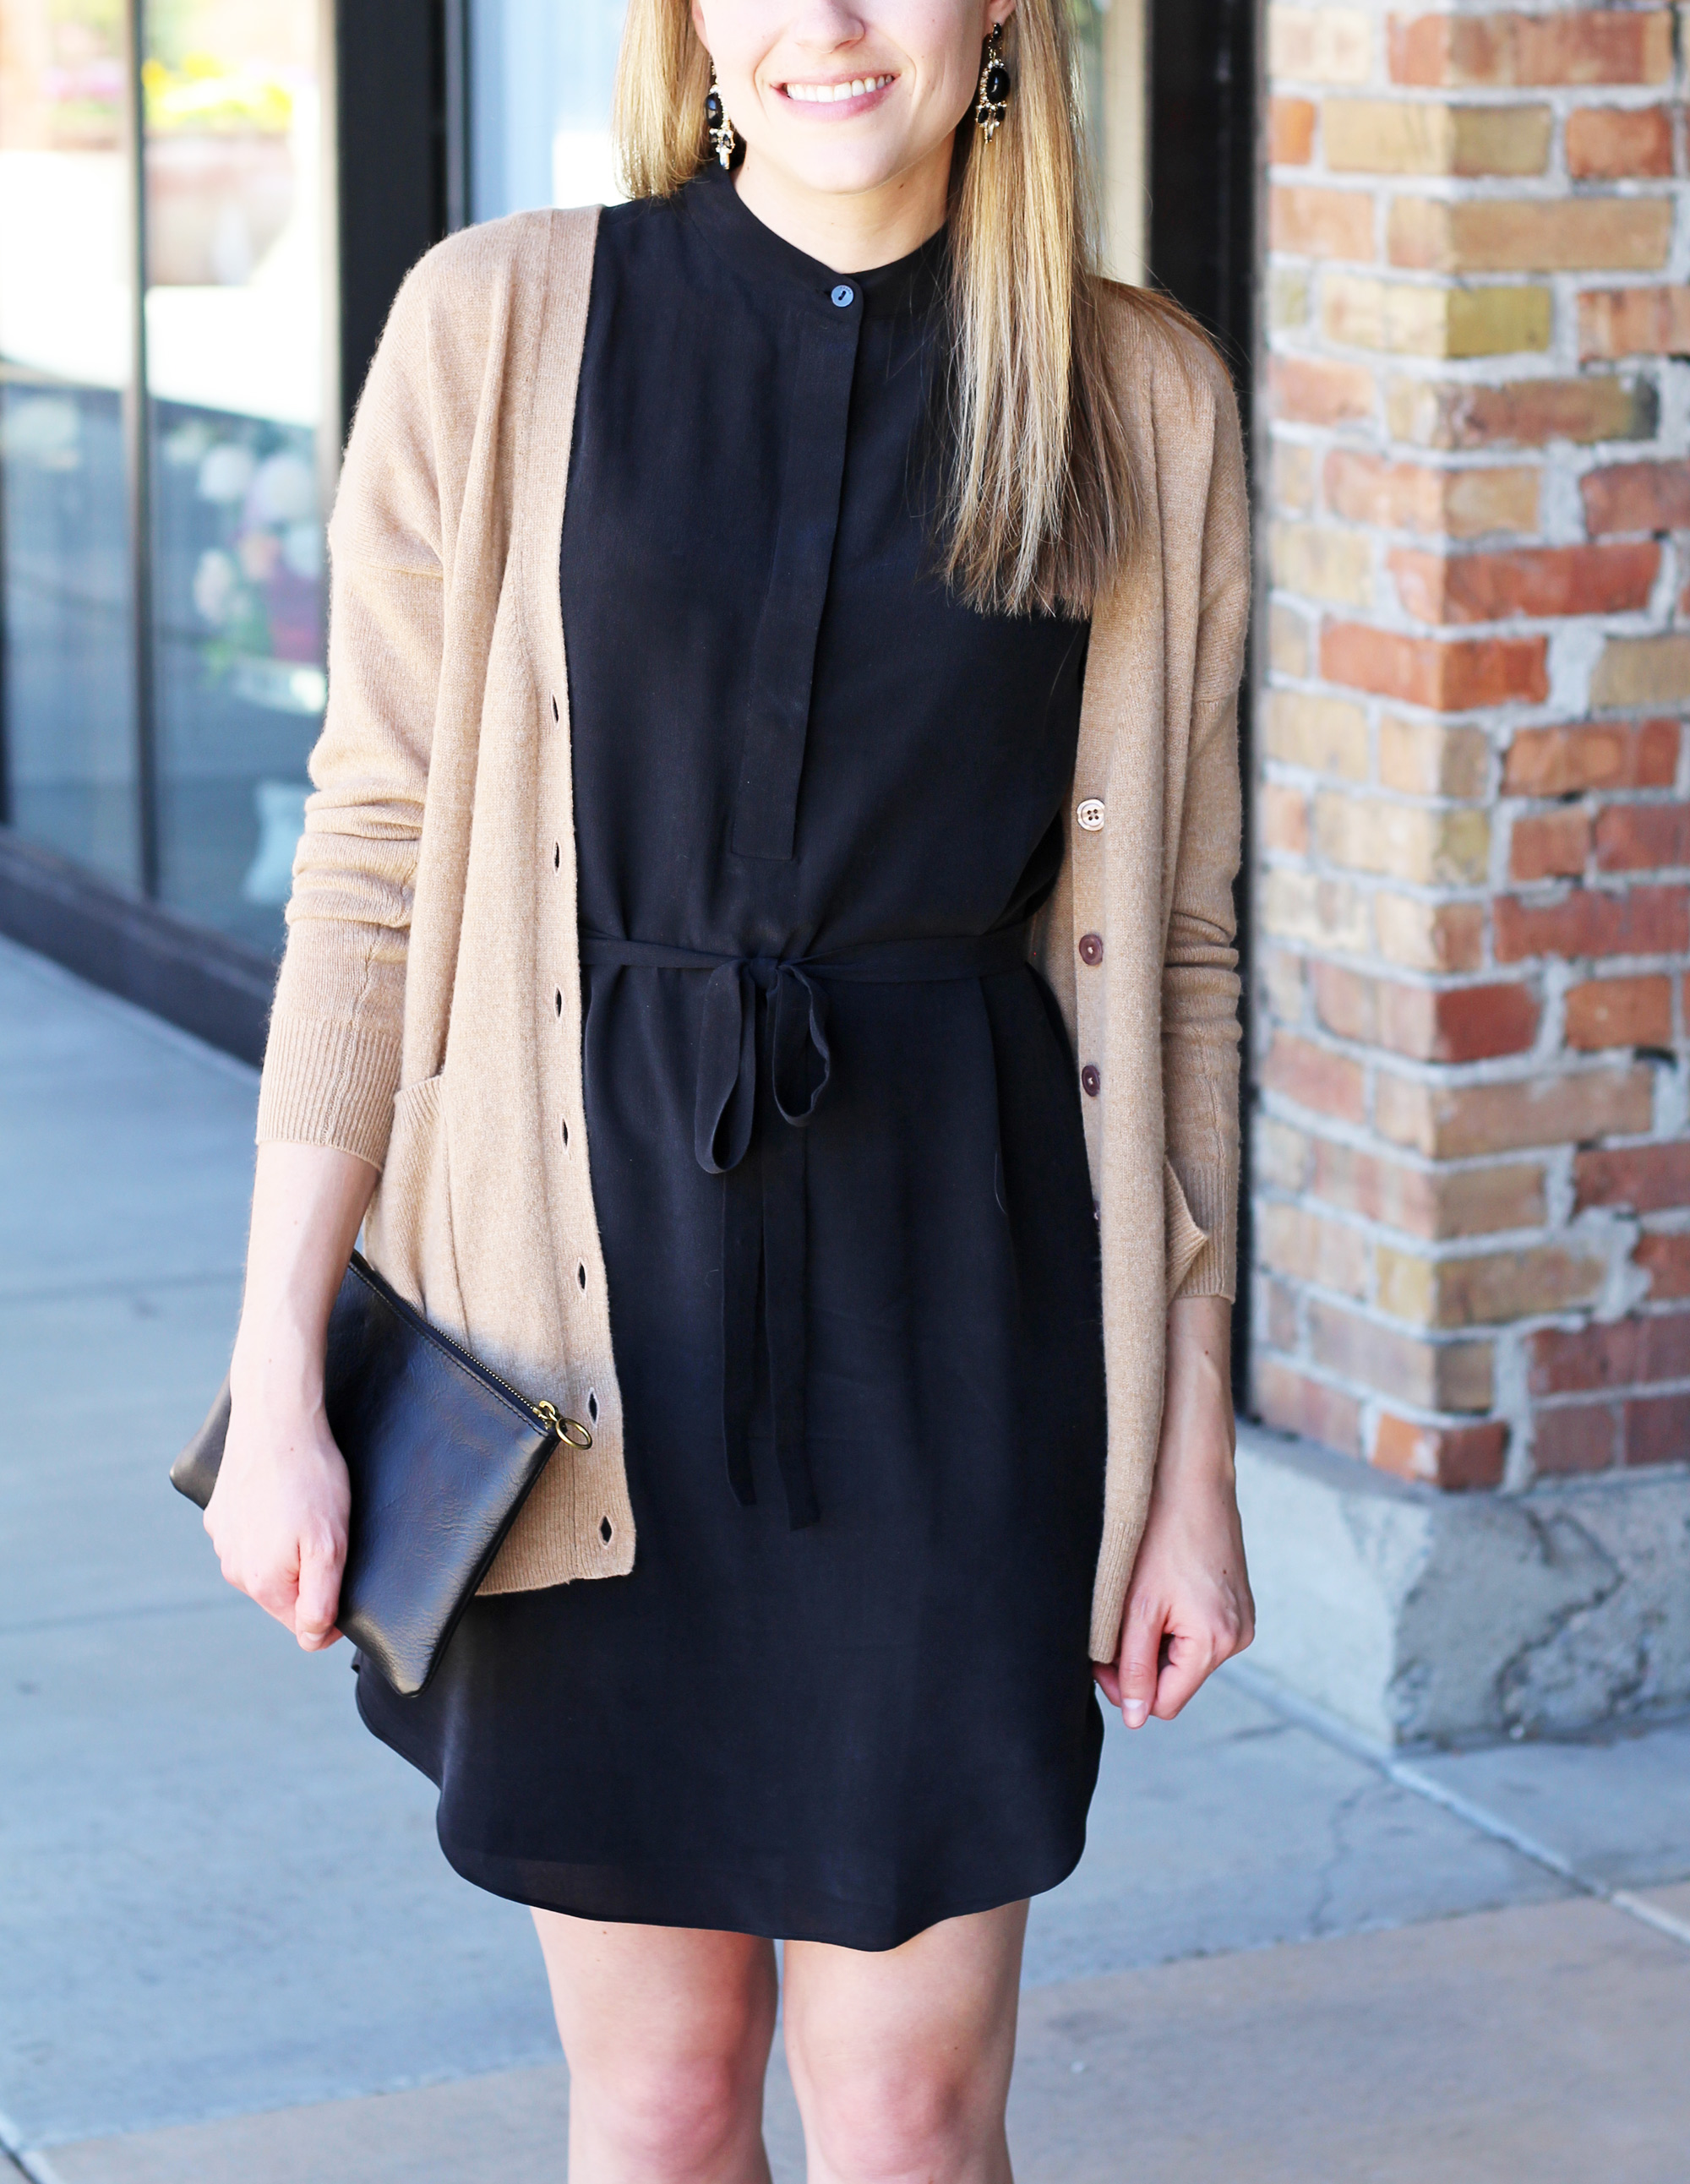 Black silk dress outfit with camel cardigan and statement earrings — Cotton Cashmere Cat Hair